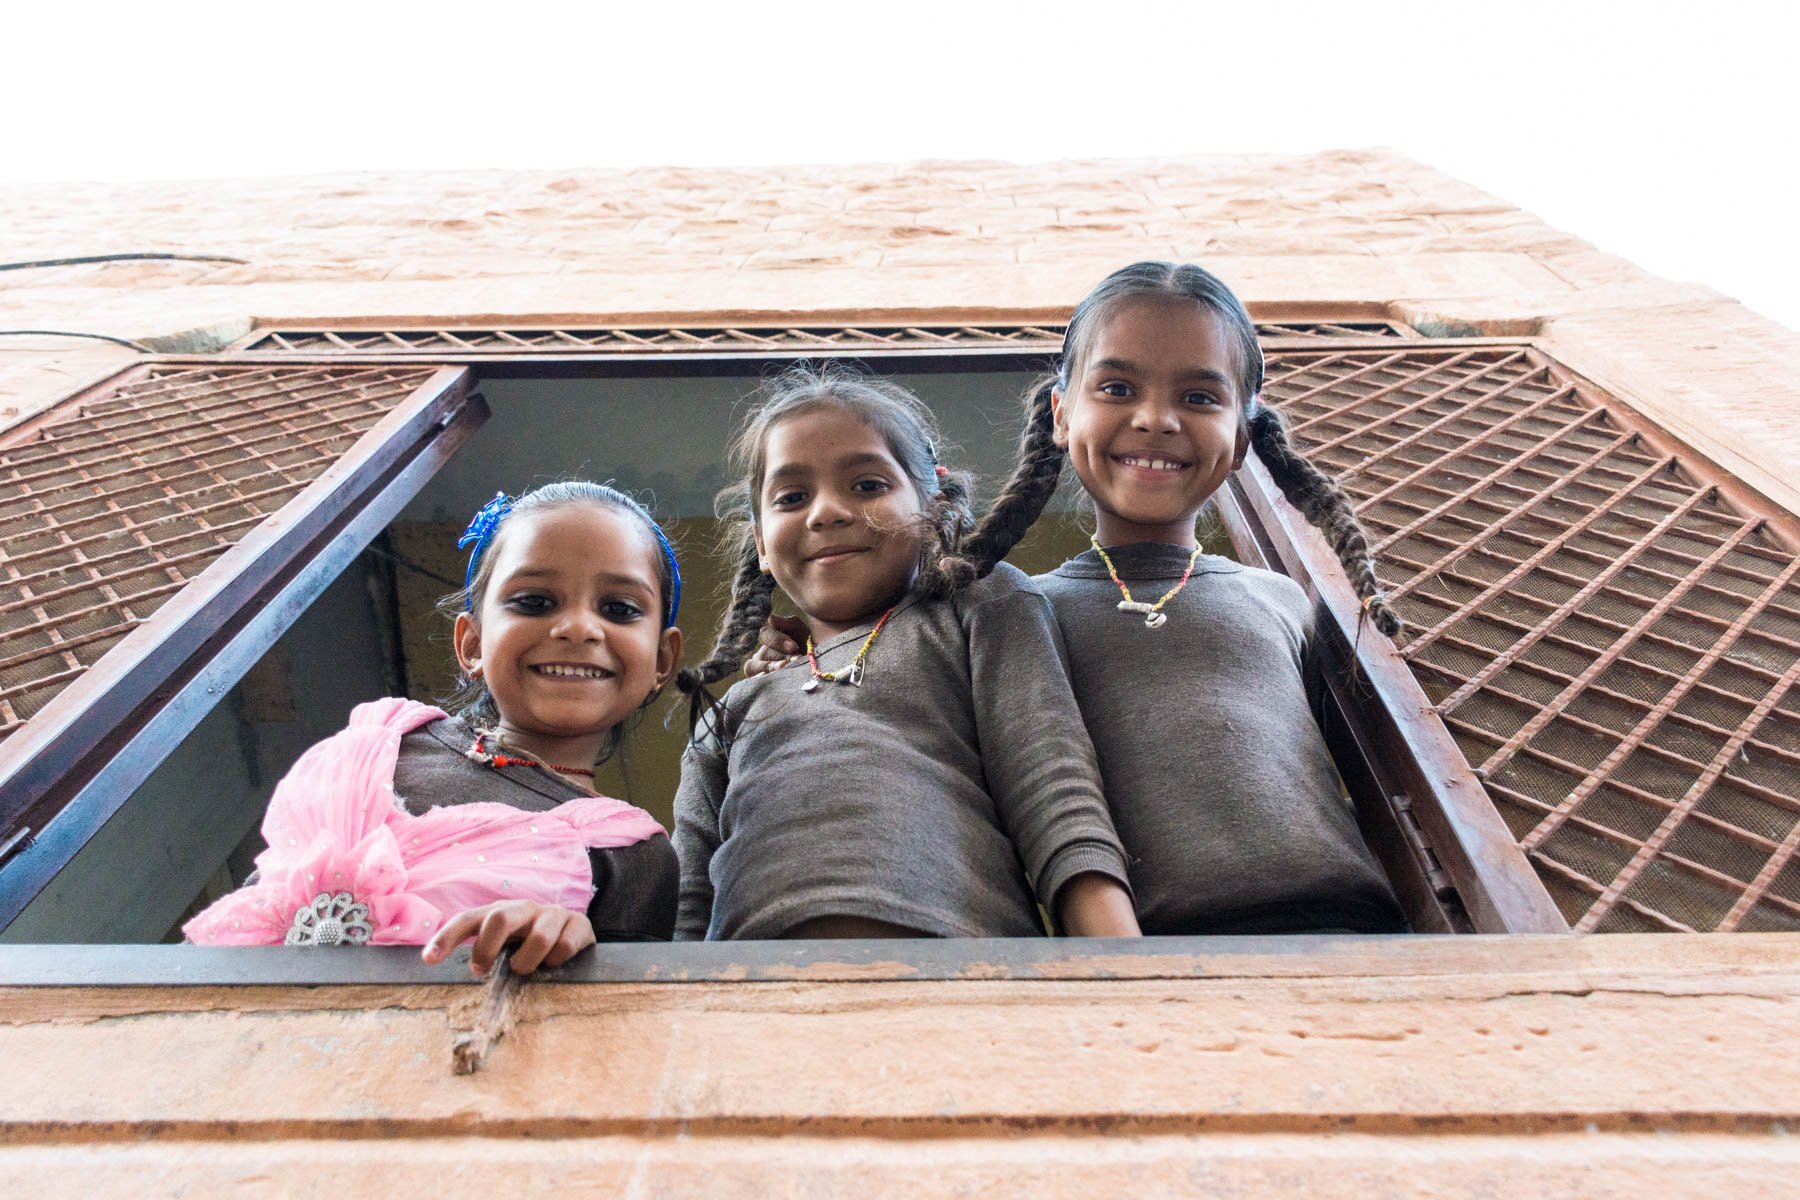 Photo essay about the streets and people of the Blue City of Jodhpur, Rajasthan, India - Girls in the window in Jodhpur - Lost With Purpose